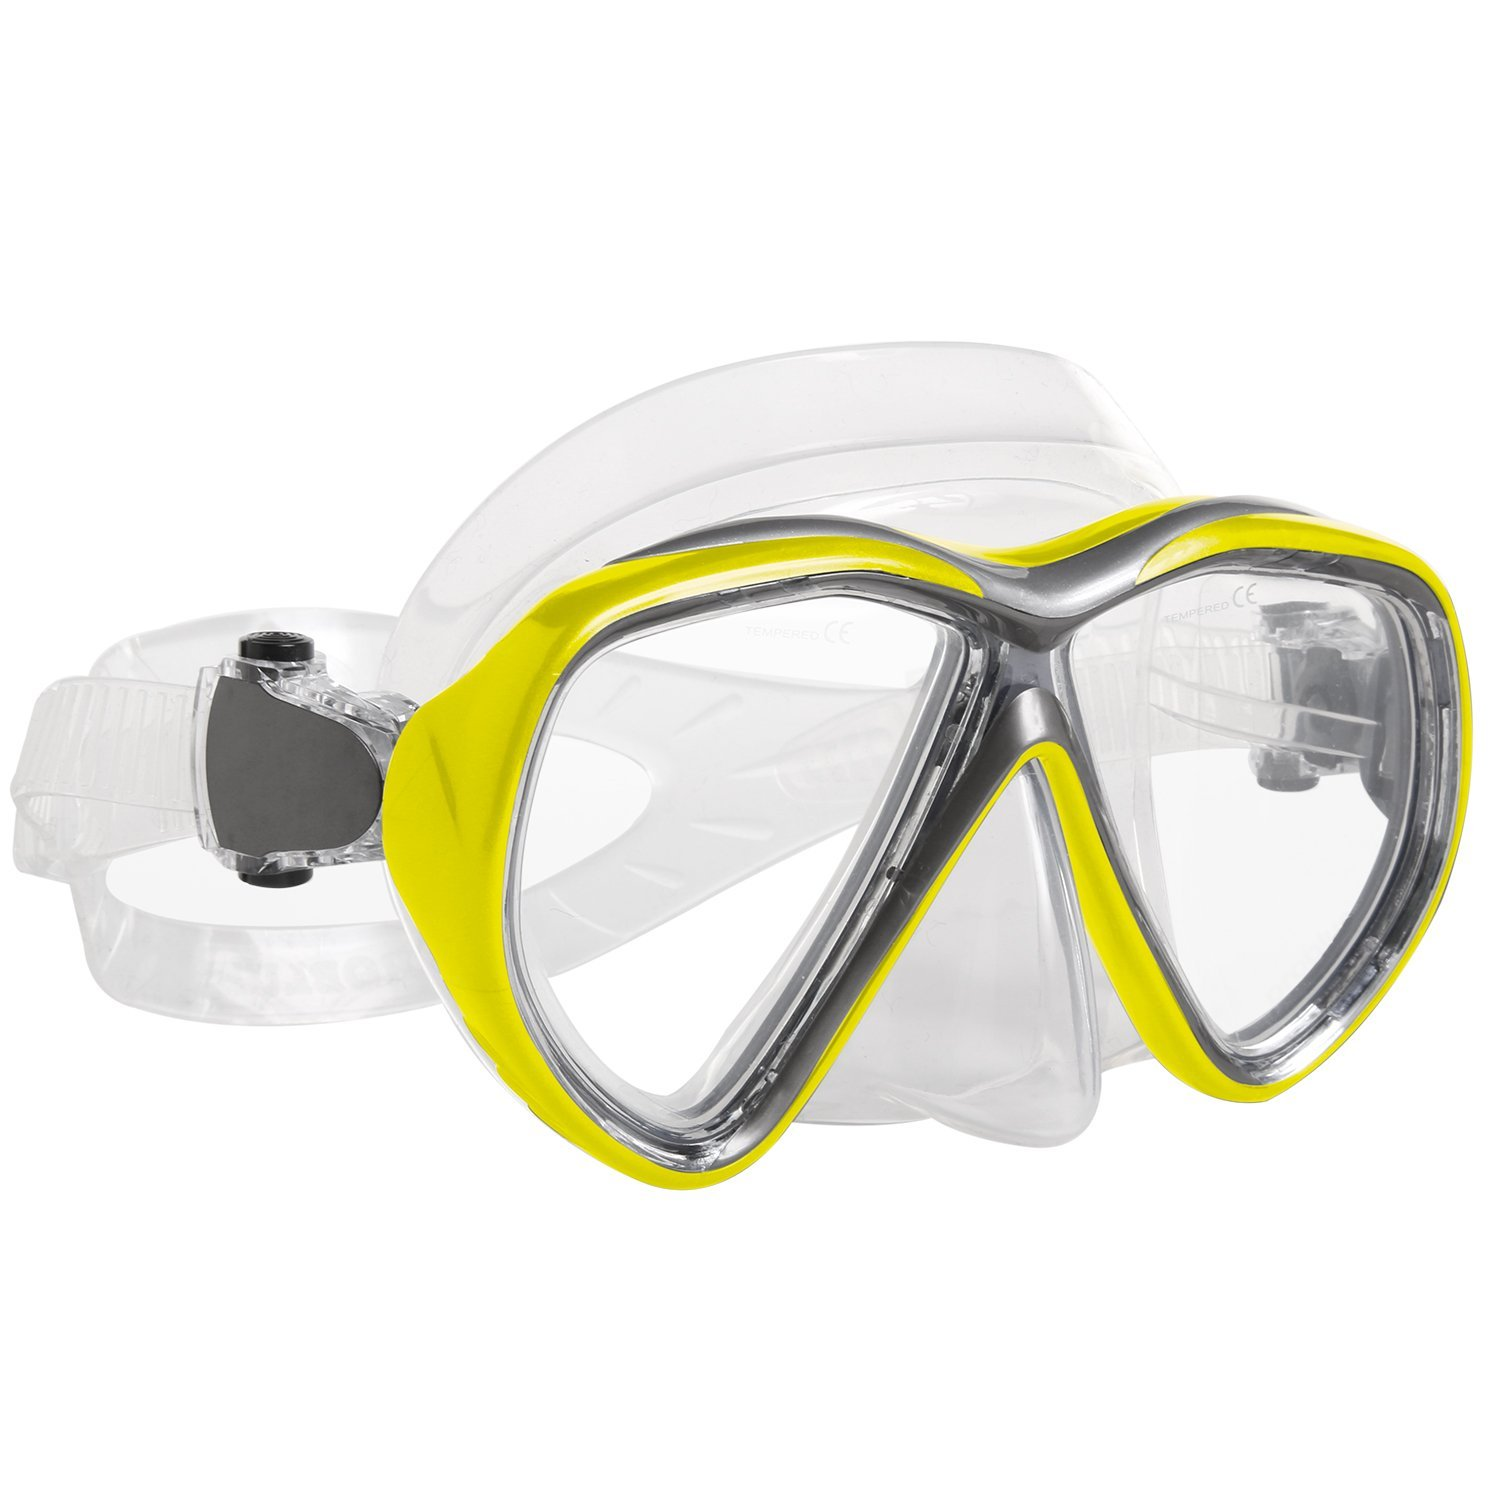 Snorkel Mask Mask Snorkel Double Lens diving mask Perfect for Scuba Diving, Snorkeling, Swimming Ivation by Ivation